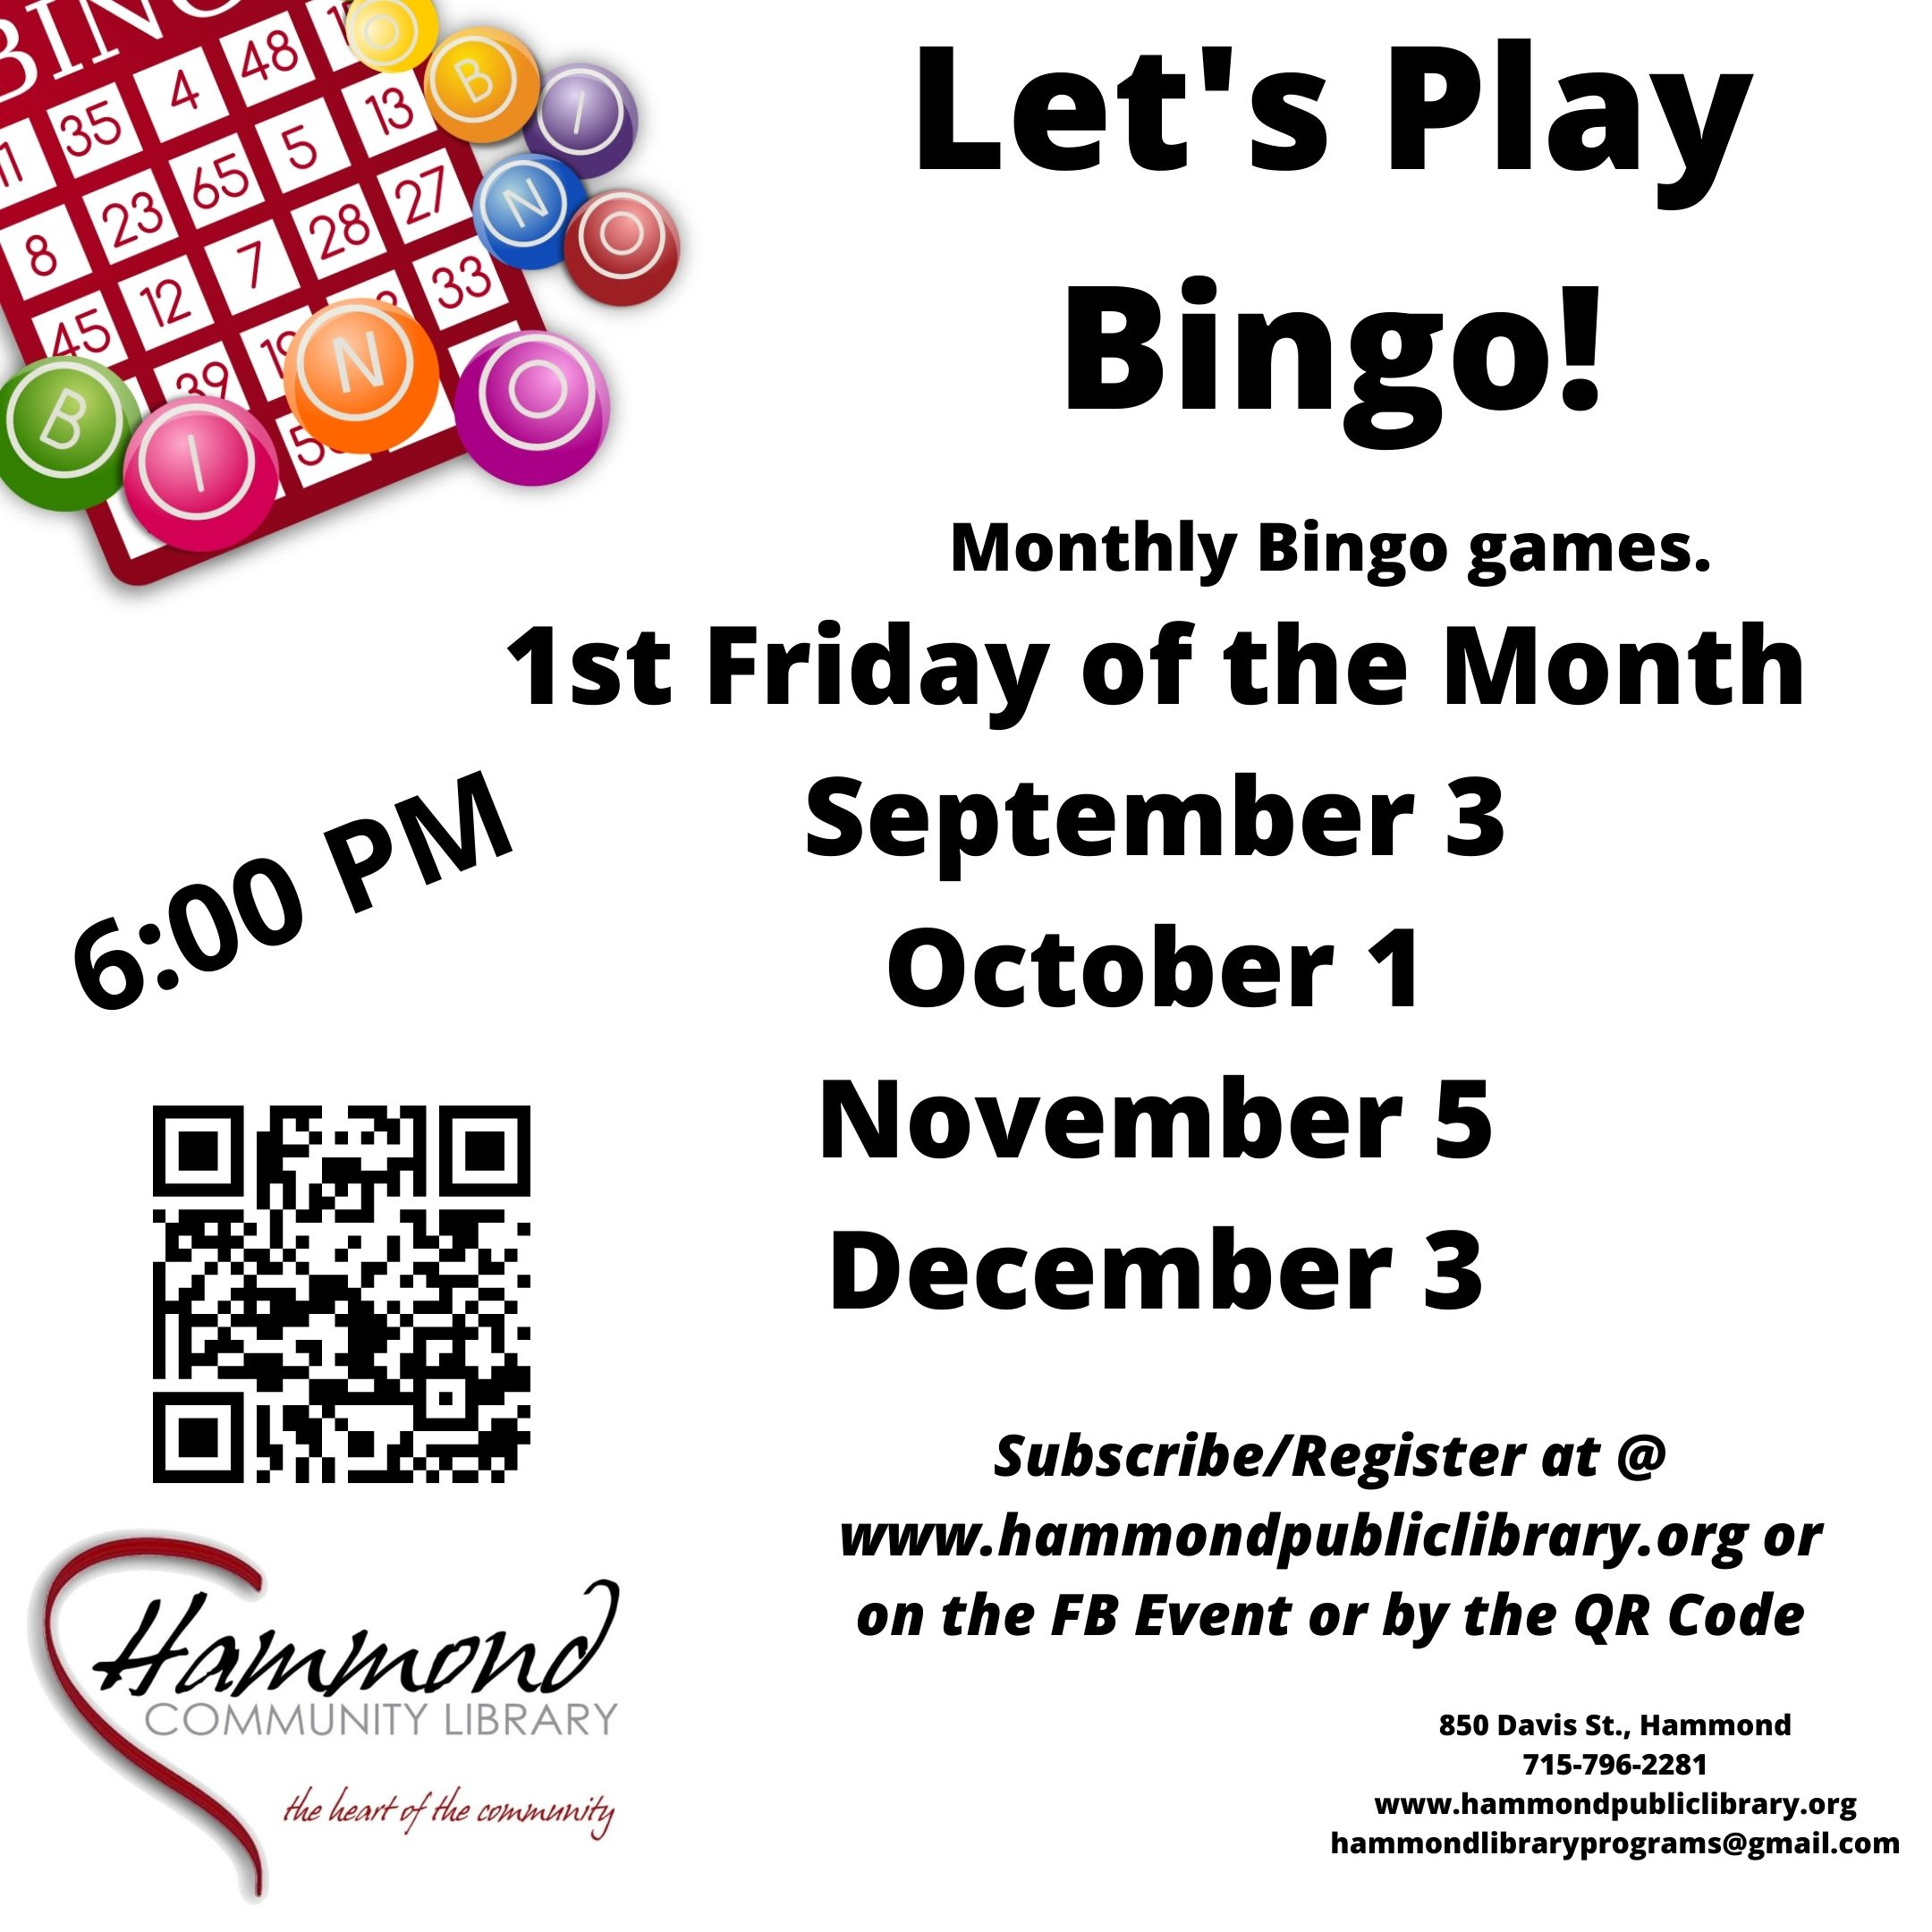 Bingo Games on the first Friday of each month.  September 3, October 1, November 5, and December 3 at 6:00 PM.